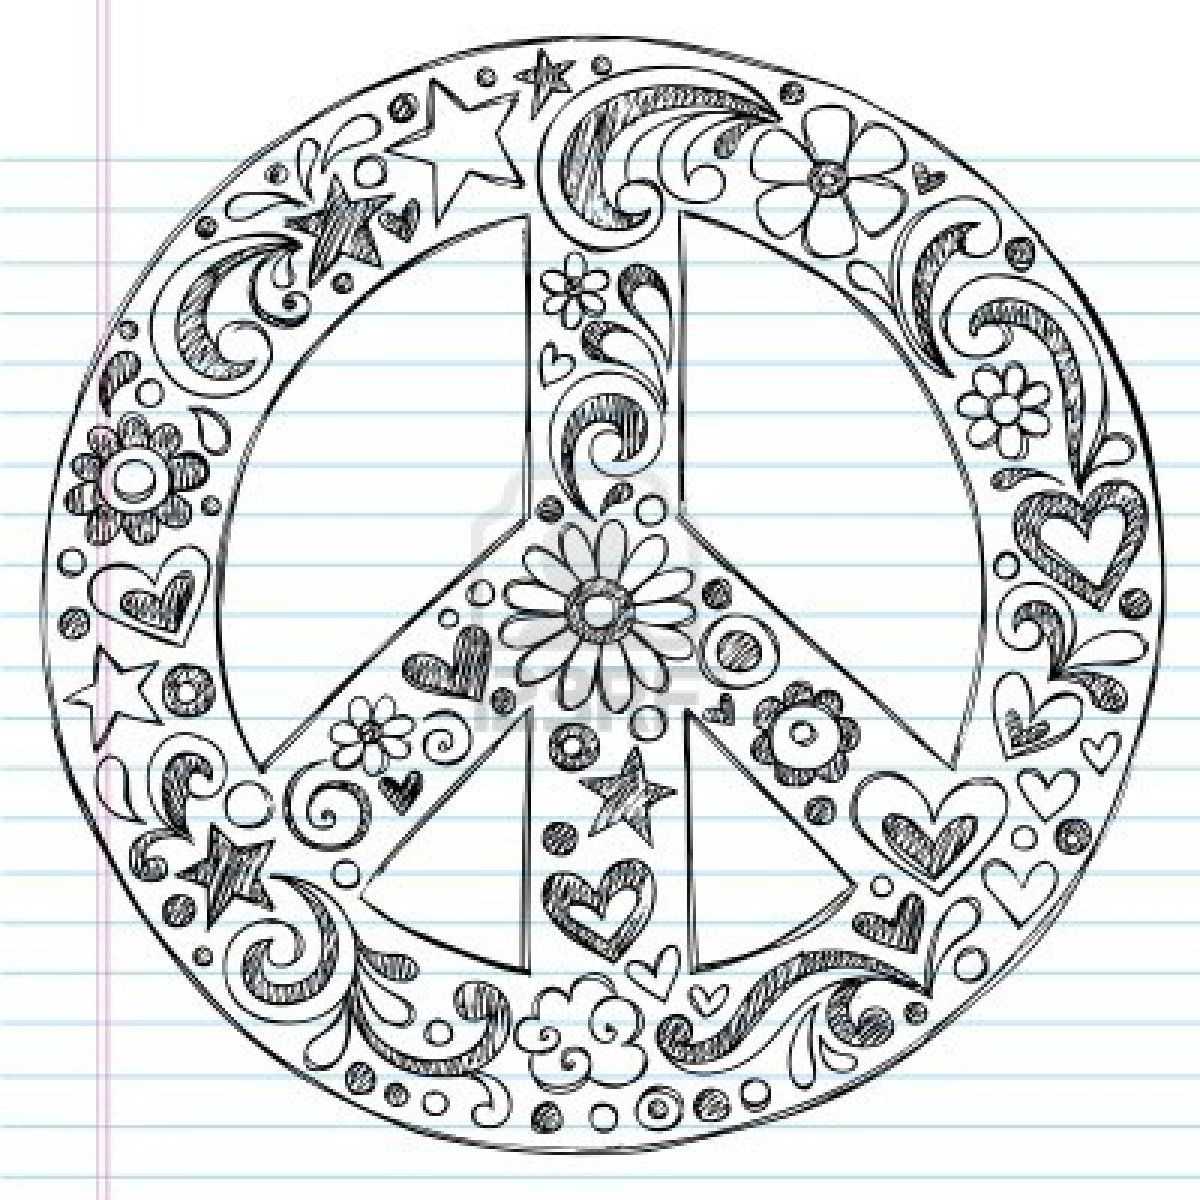 Large printable peace sign 9370277 hand drawn sketchy peace sign large printable peace sign 9370277 hand drawn sketchy peace sign biocorpaavc